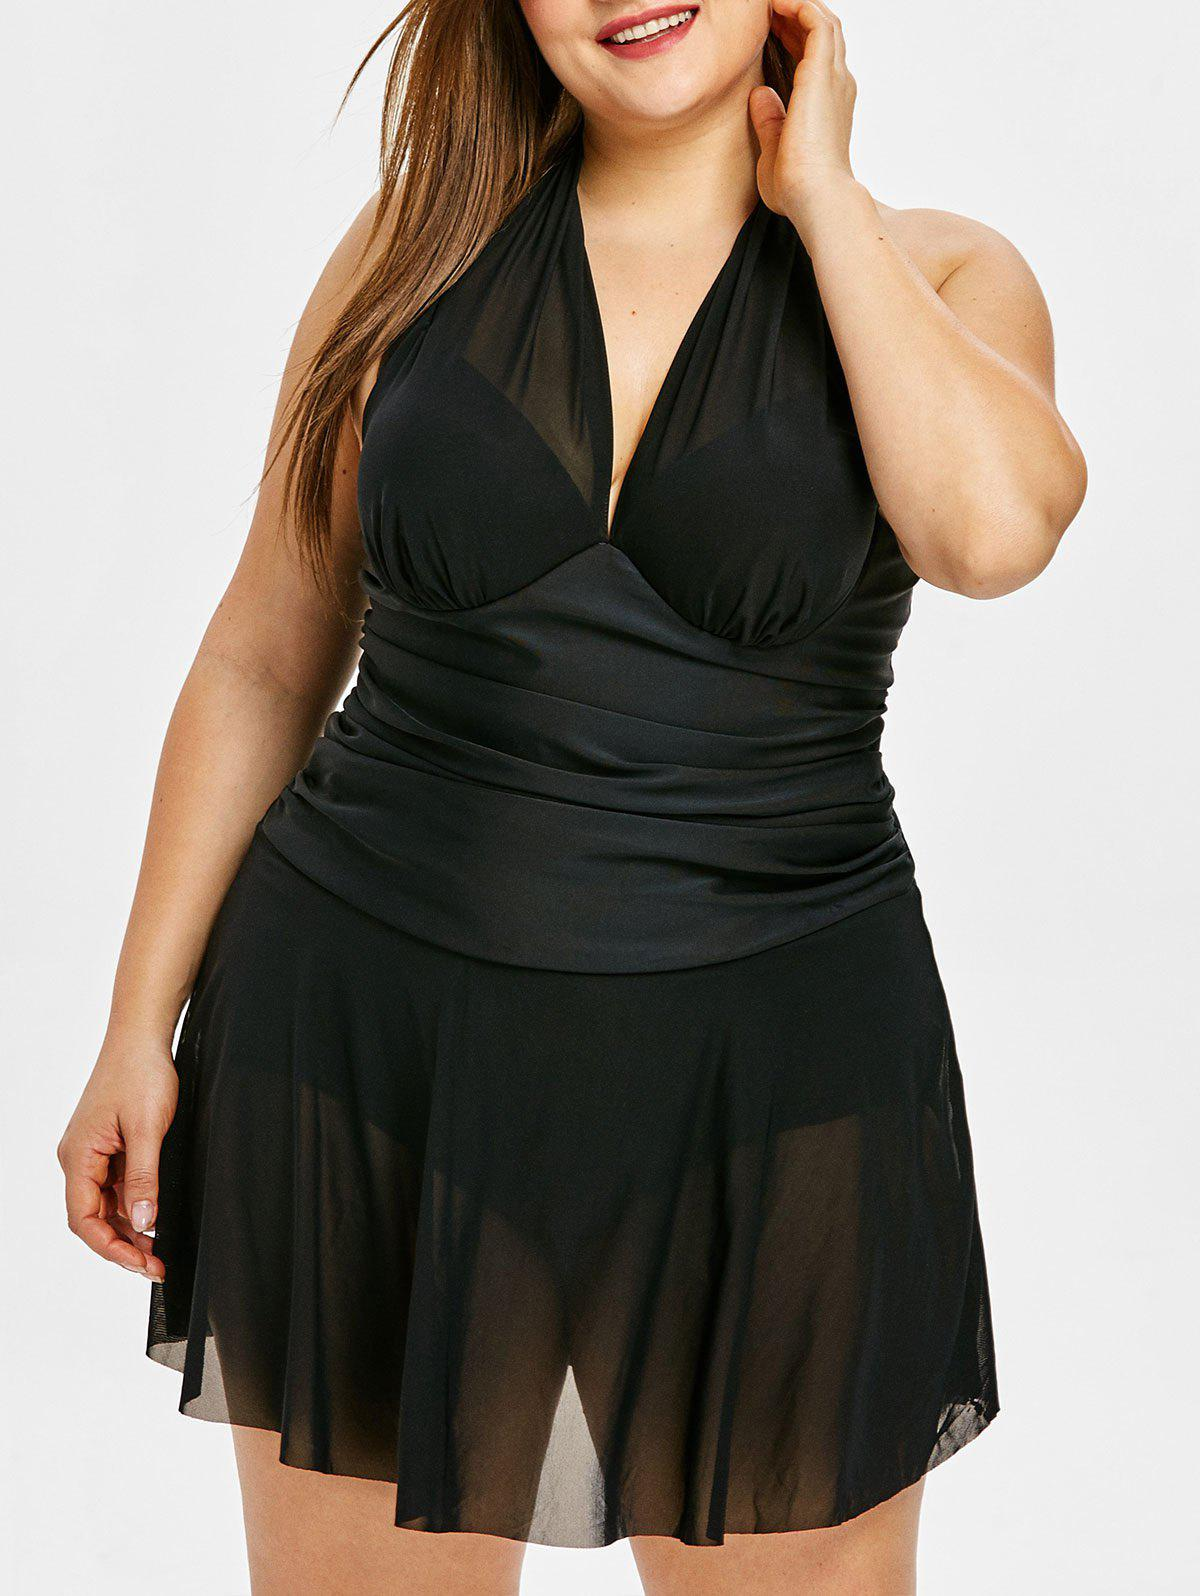 Hot Cross Back Plus Size Mesh Skirted Swimsuit